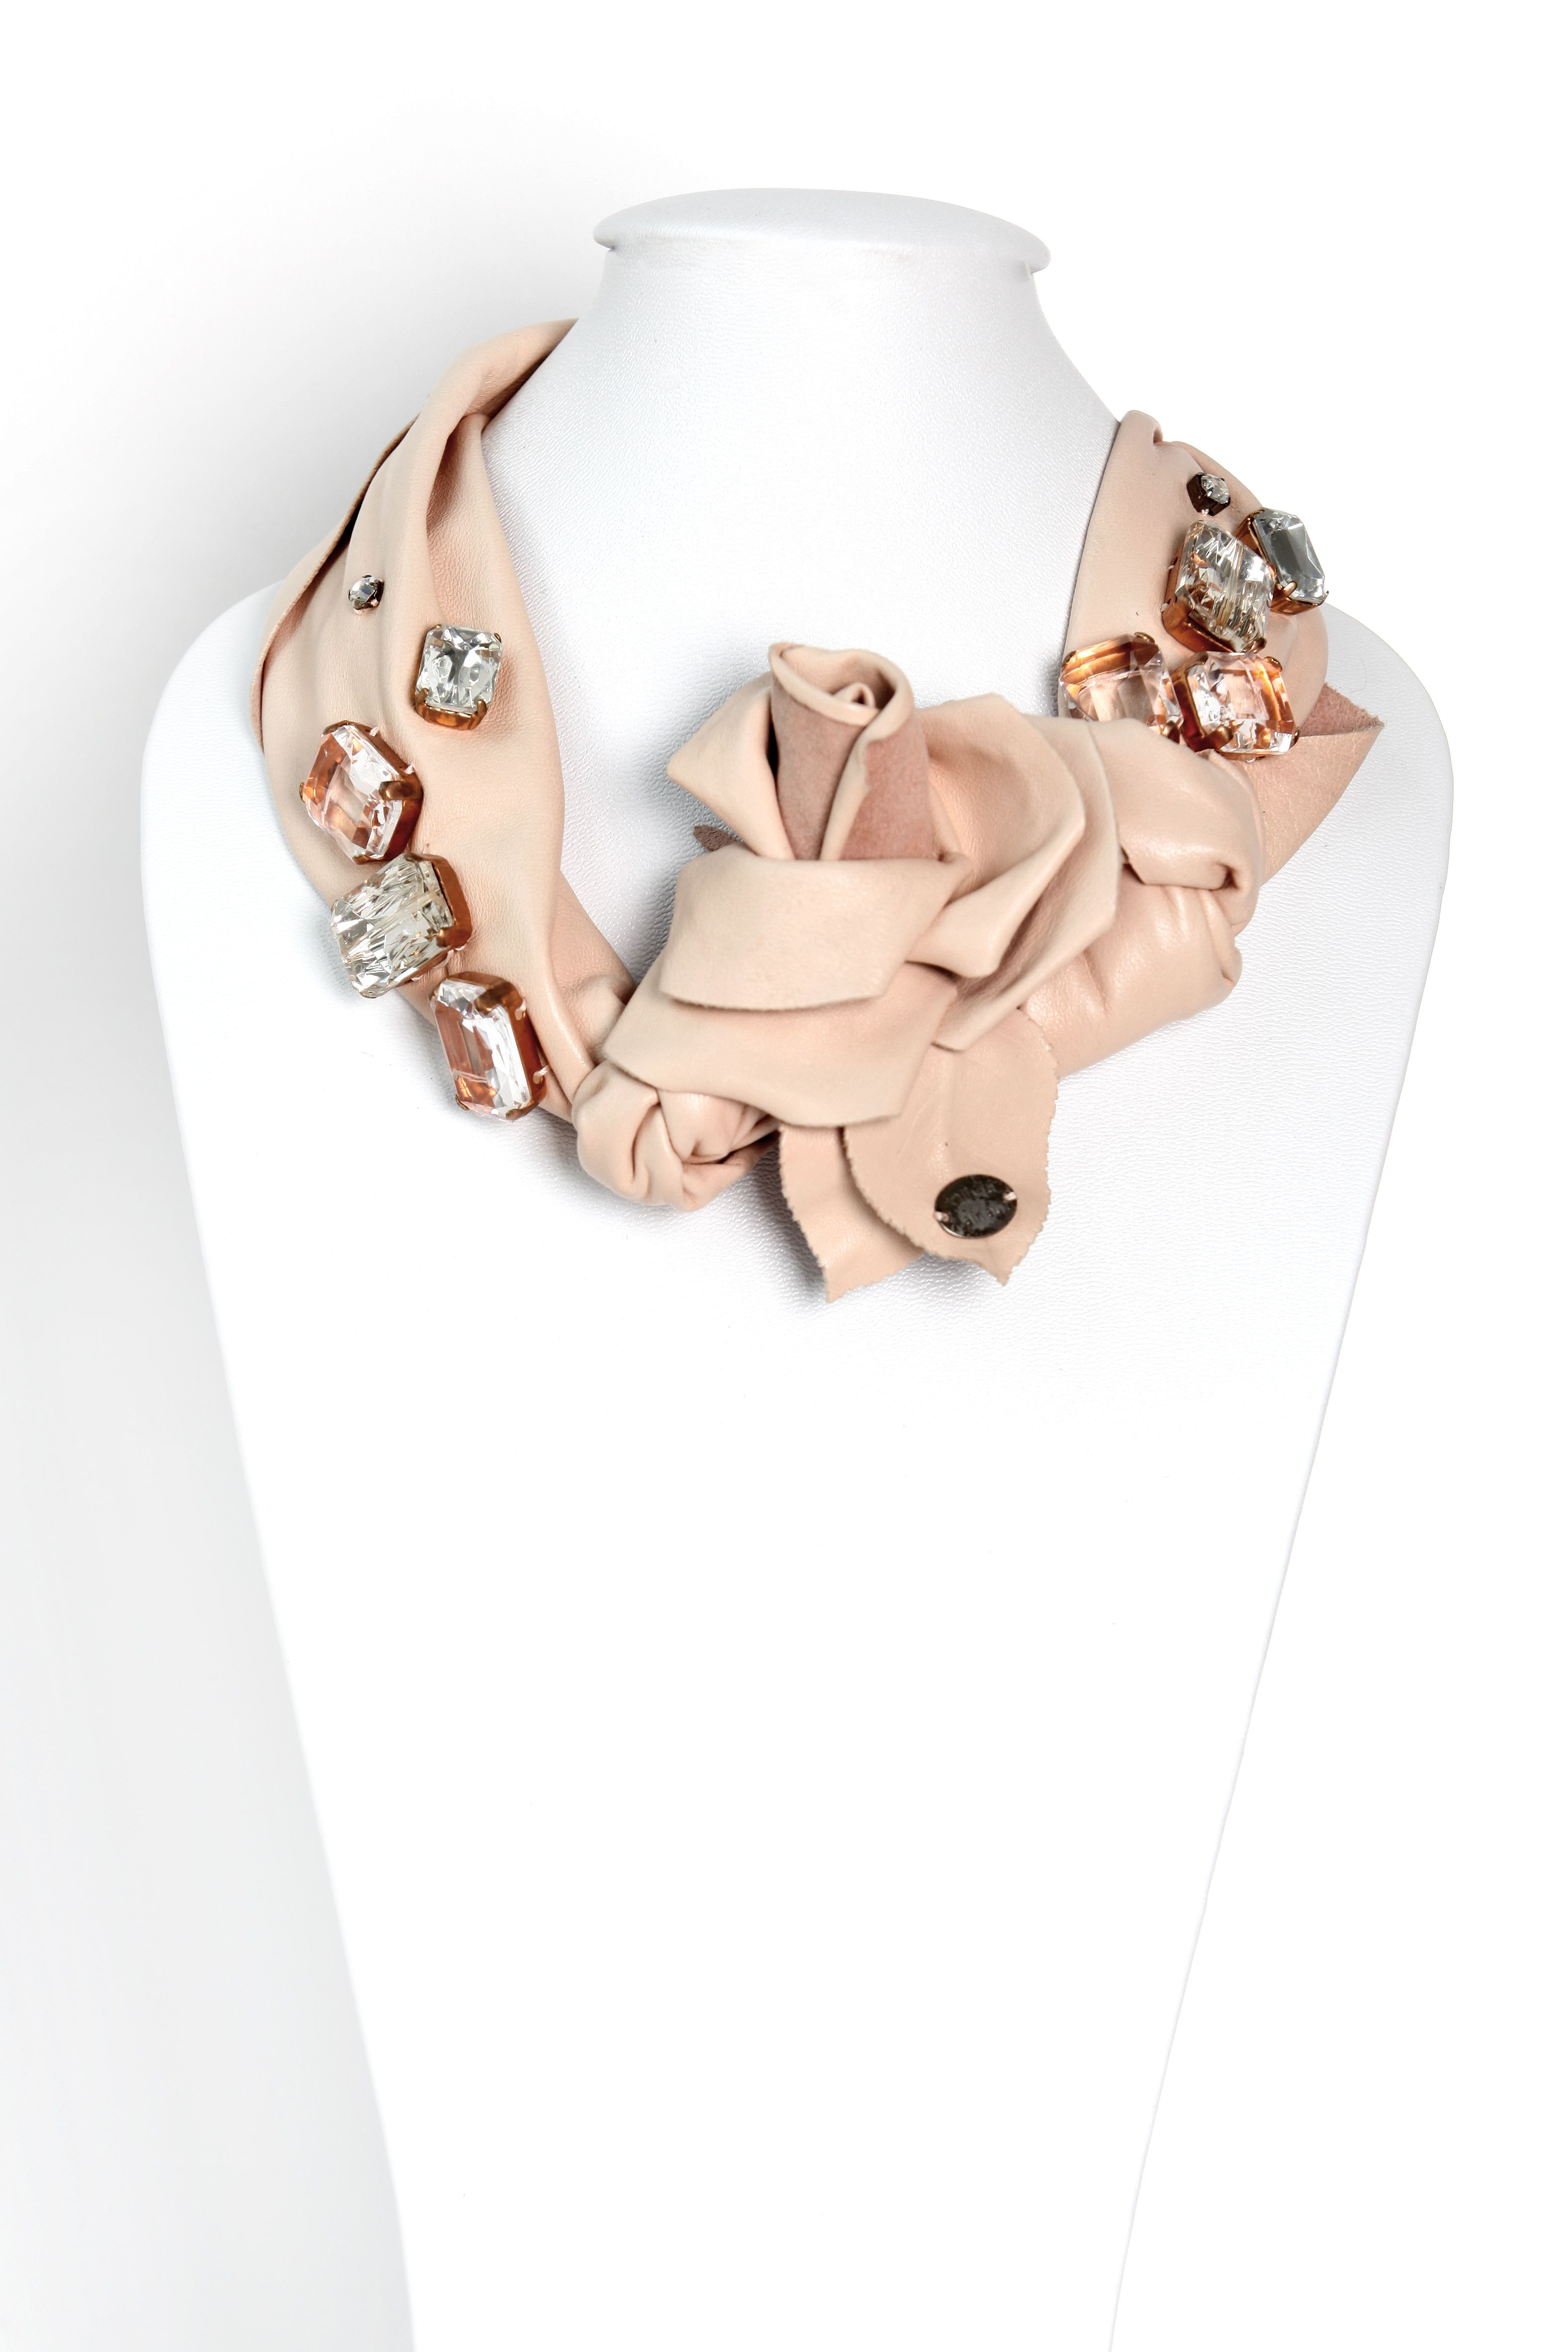 """ROSE by """"OH"""" WWW.OLIVIAHAINAUT.COM"""